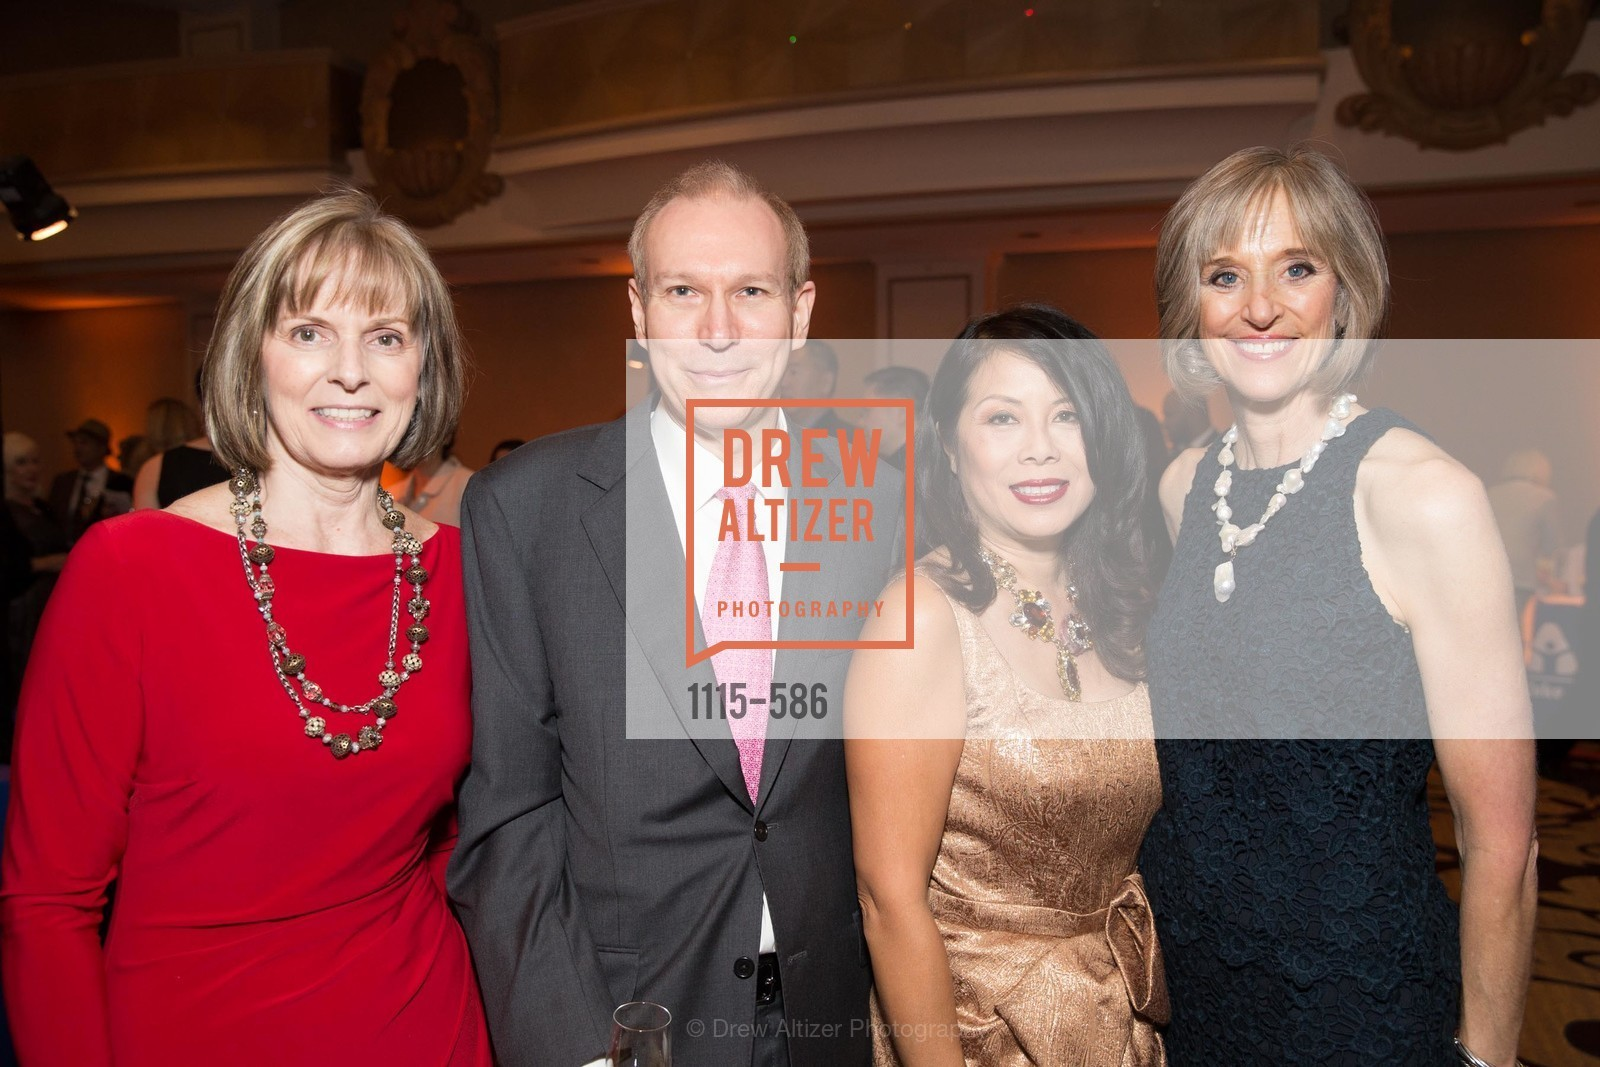 Pat Nelson, Daniel Gemillais, Sharon Seto, PJ Handeland, 2014 Bay Area ARTHRITIS AUXILLIARY Benefit & Fashion Show, US, October 1st, 2014,Drew Altizer, Drew Altizer Photography, full-service agency, private events, San Francisco photographer, photographer california